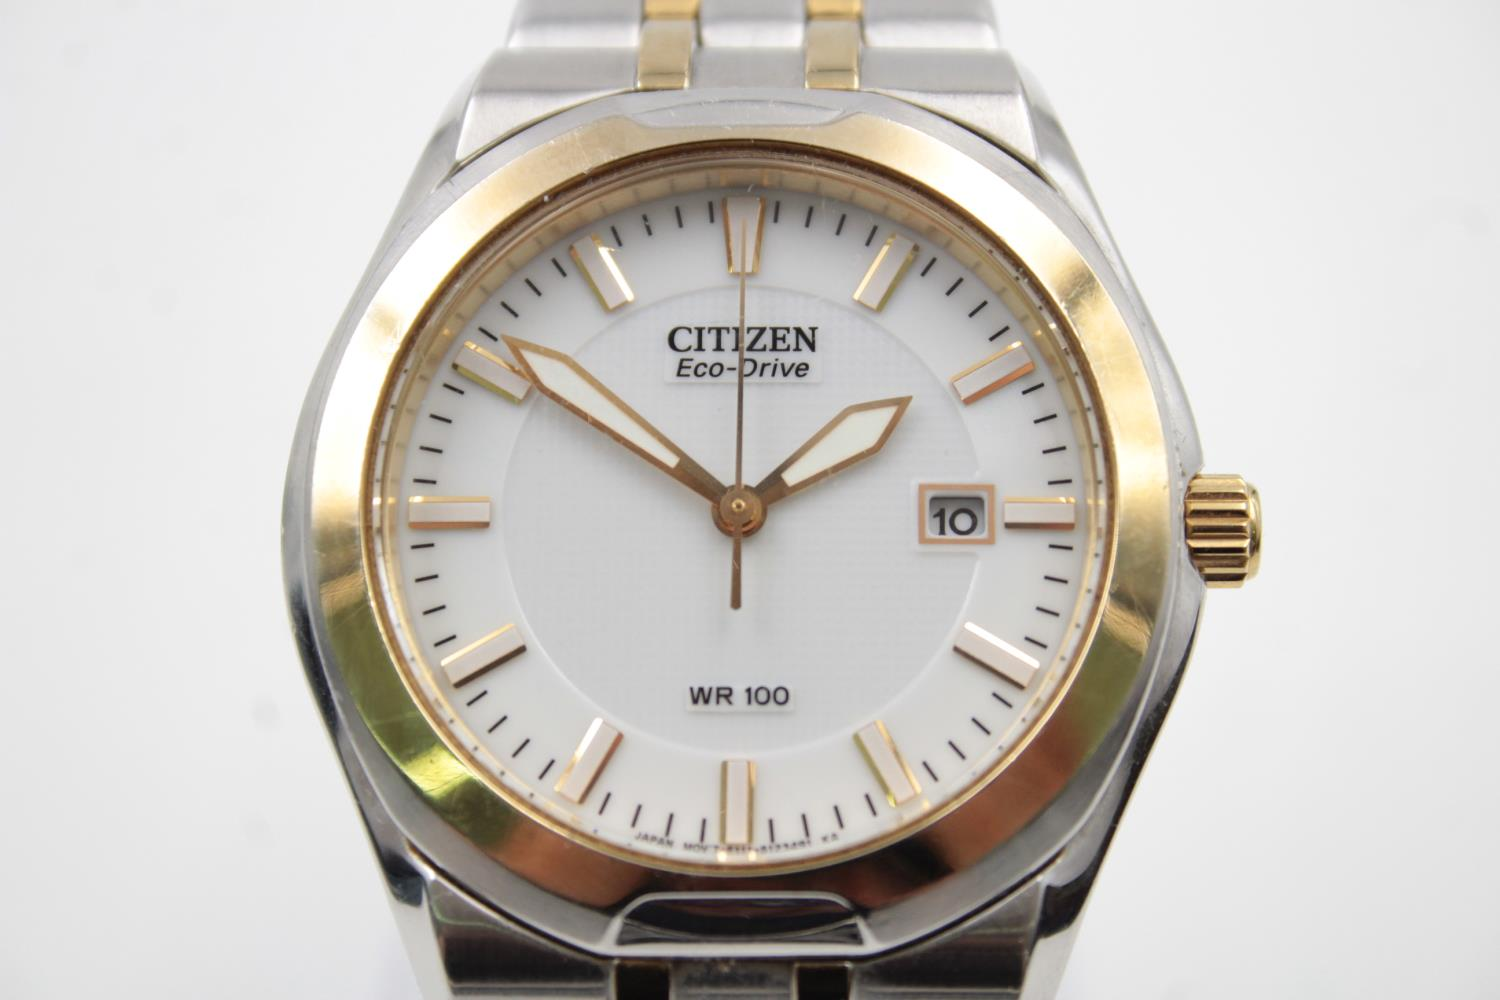 Gents CITIZEN Eco-Drive WR100 Two Tone WRISTWATCH WORKING in Original Box - Image 3 of 7